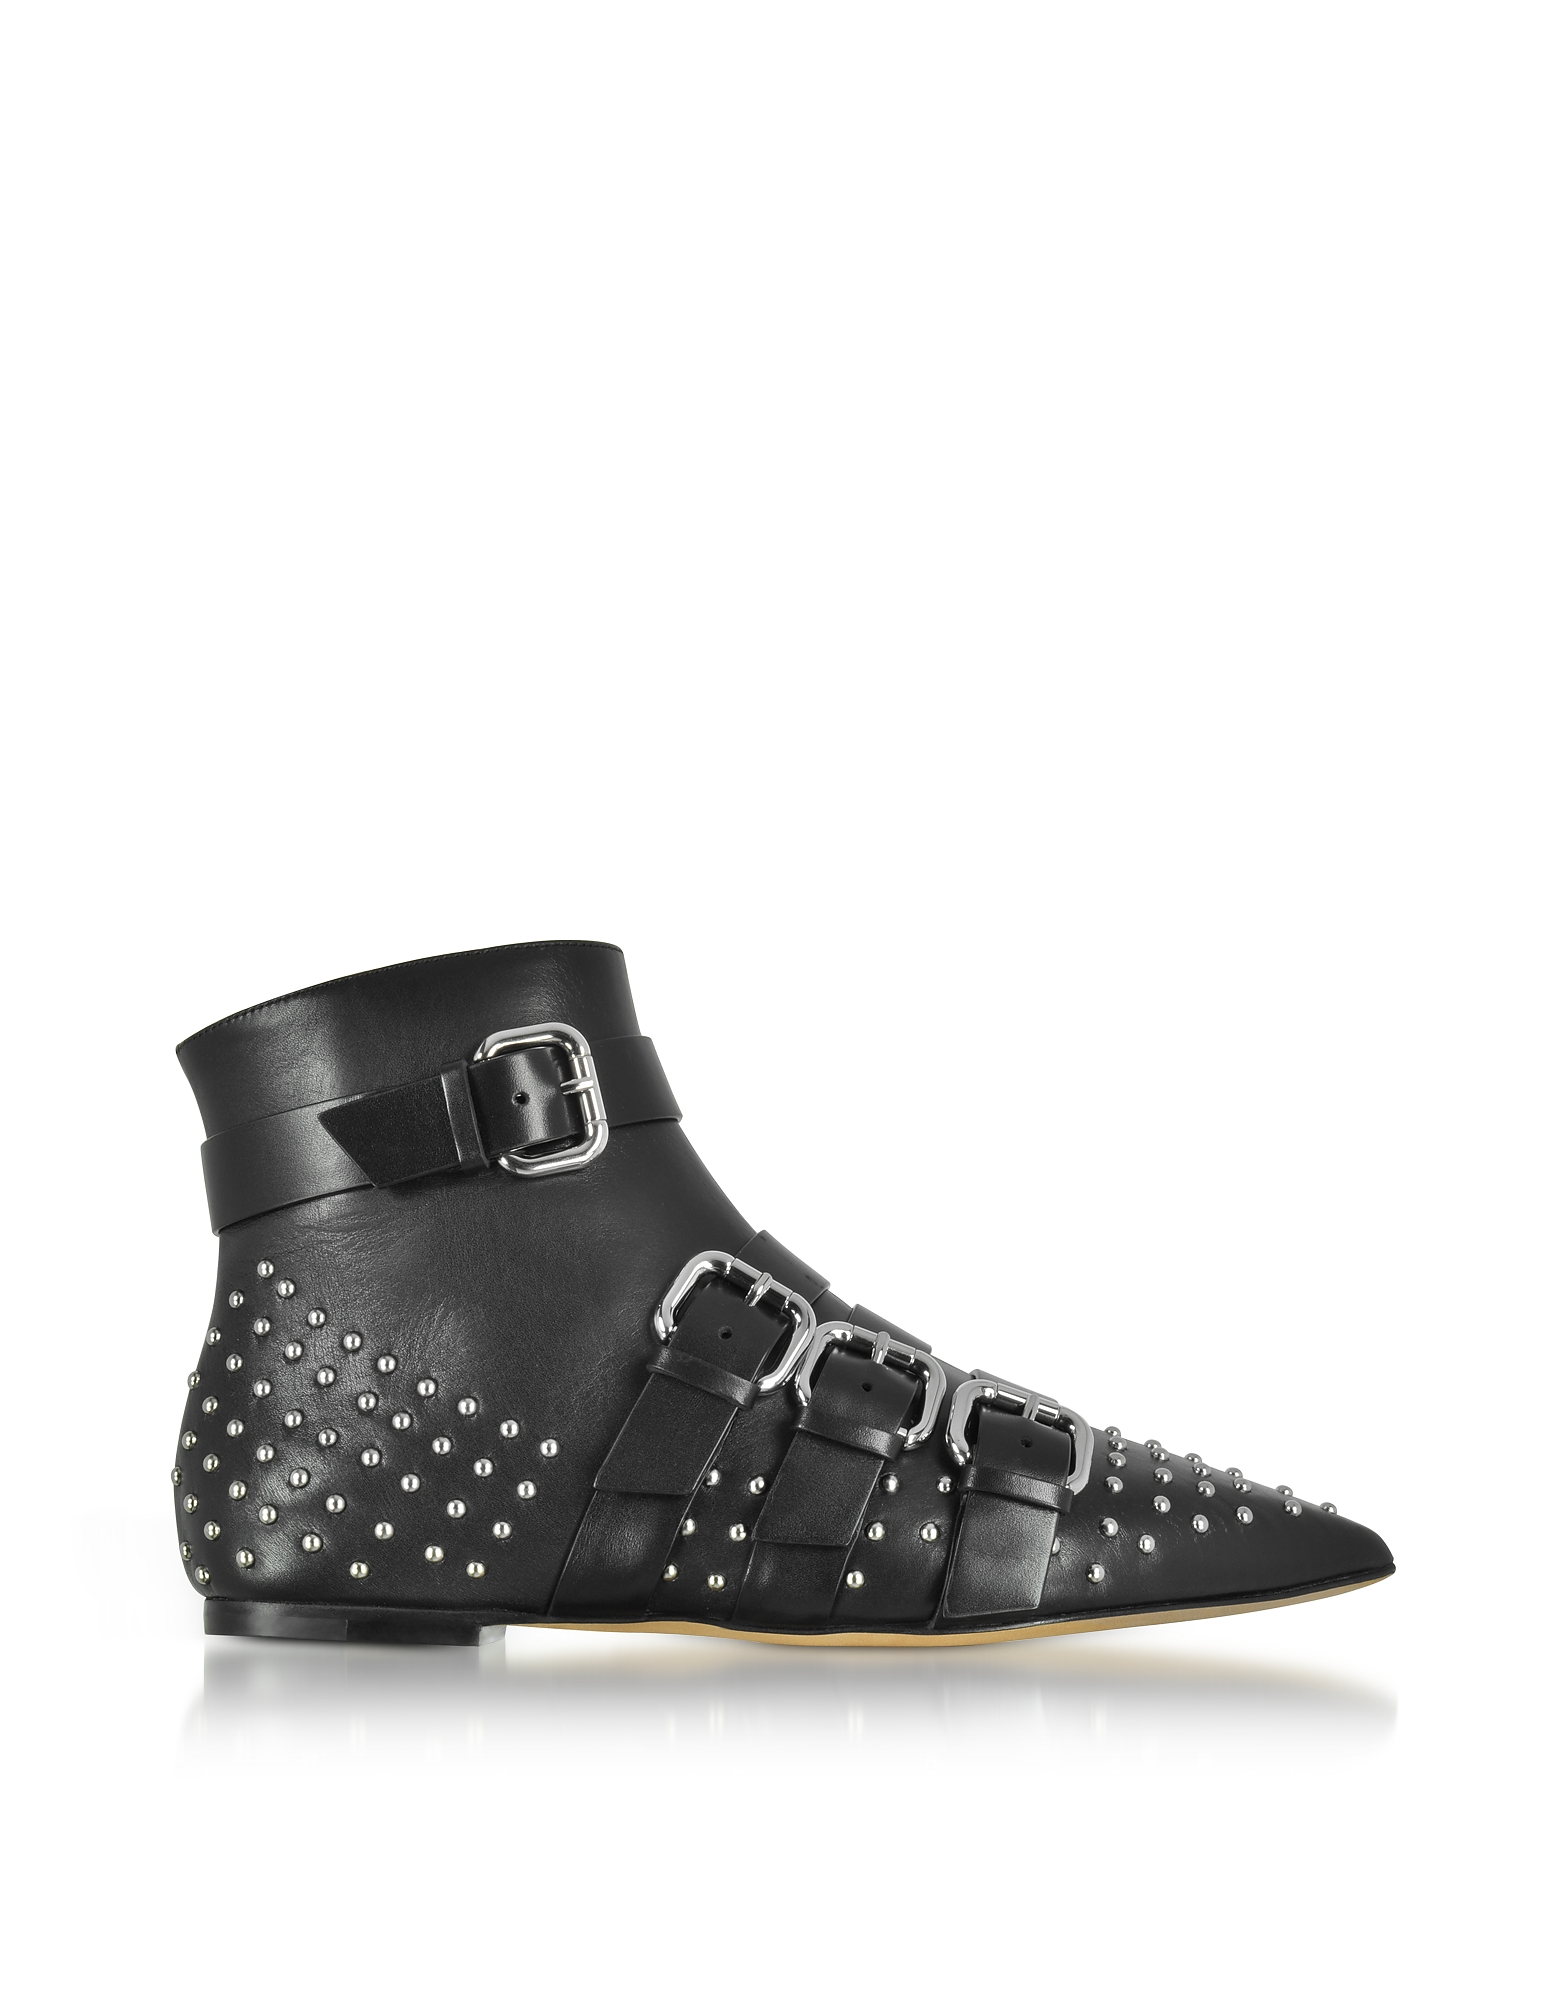 RED Valentino Shoes, Black Leather Pointy Booties w/Buckles and Studs